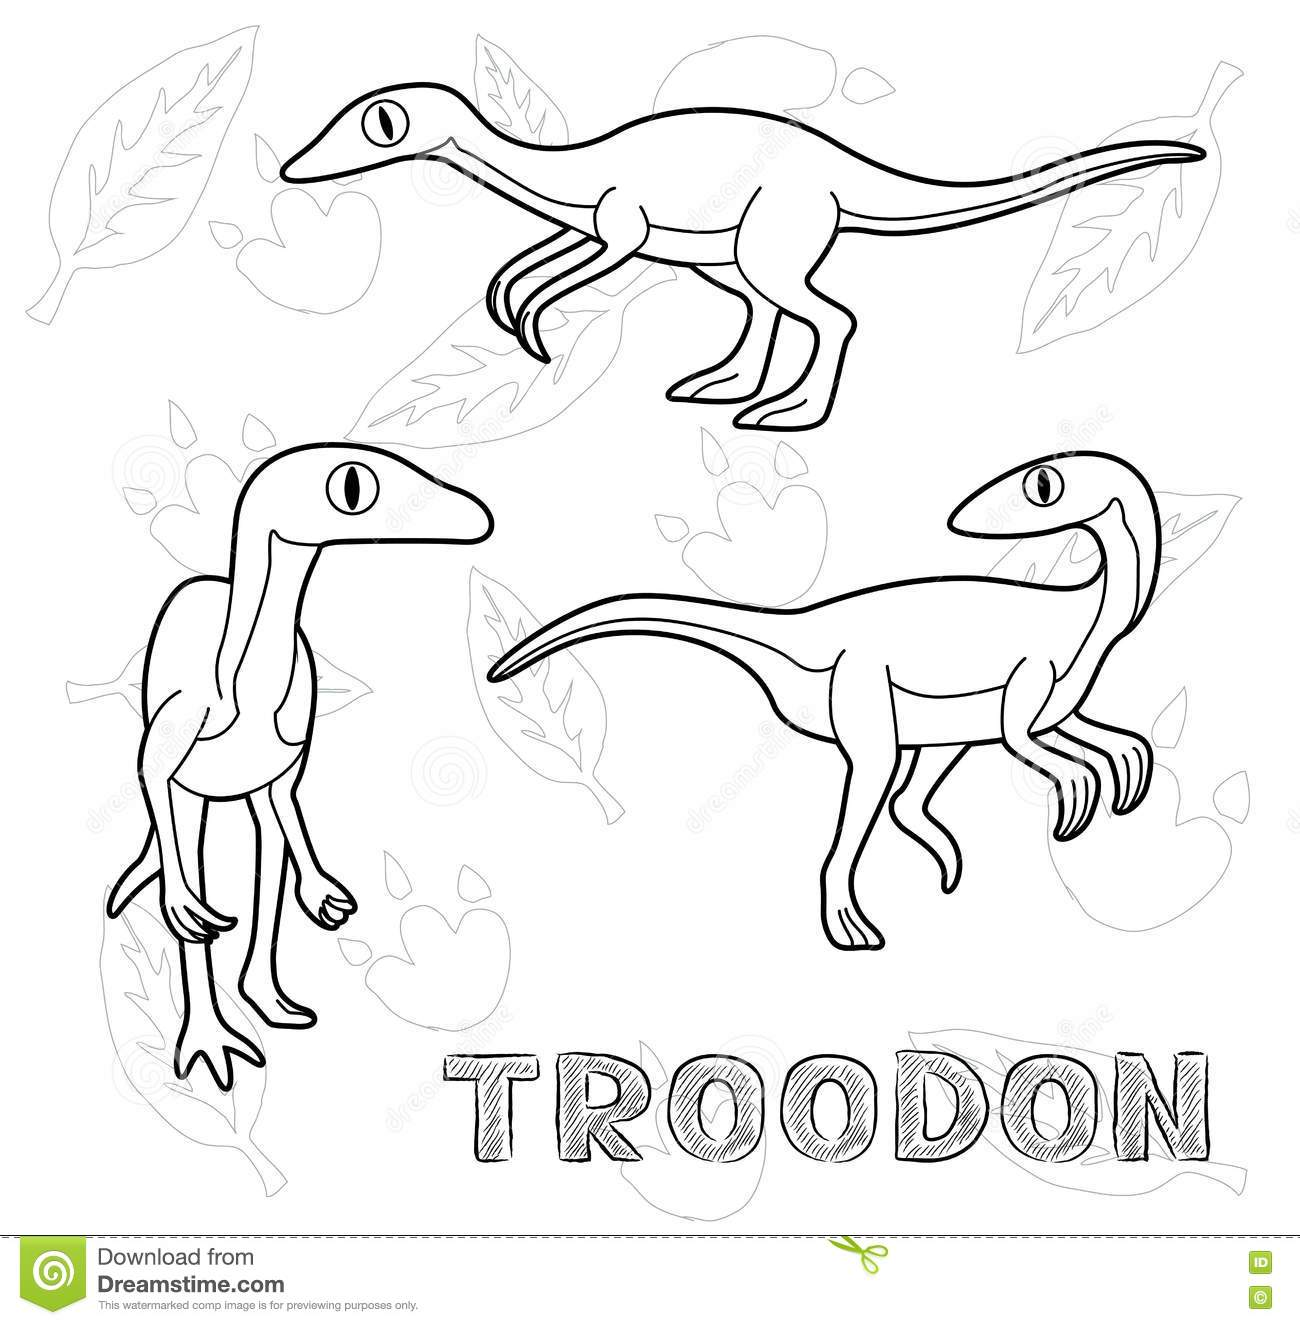 troodon coloring page - dinosaur troodon cartoon vector illustration monochrome